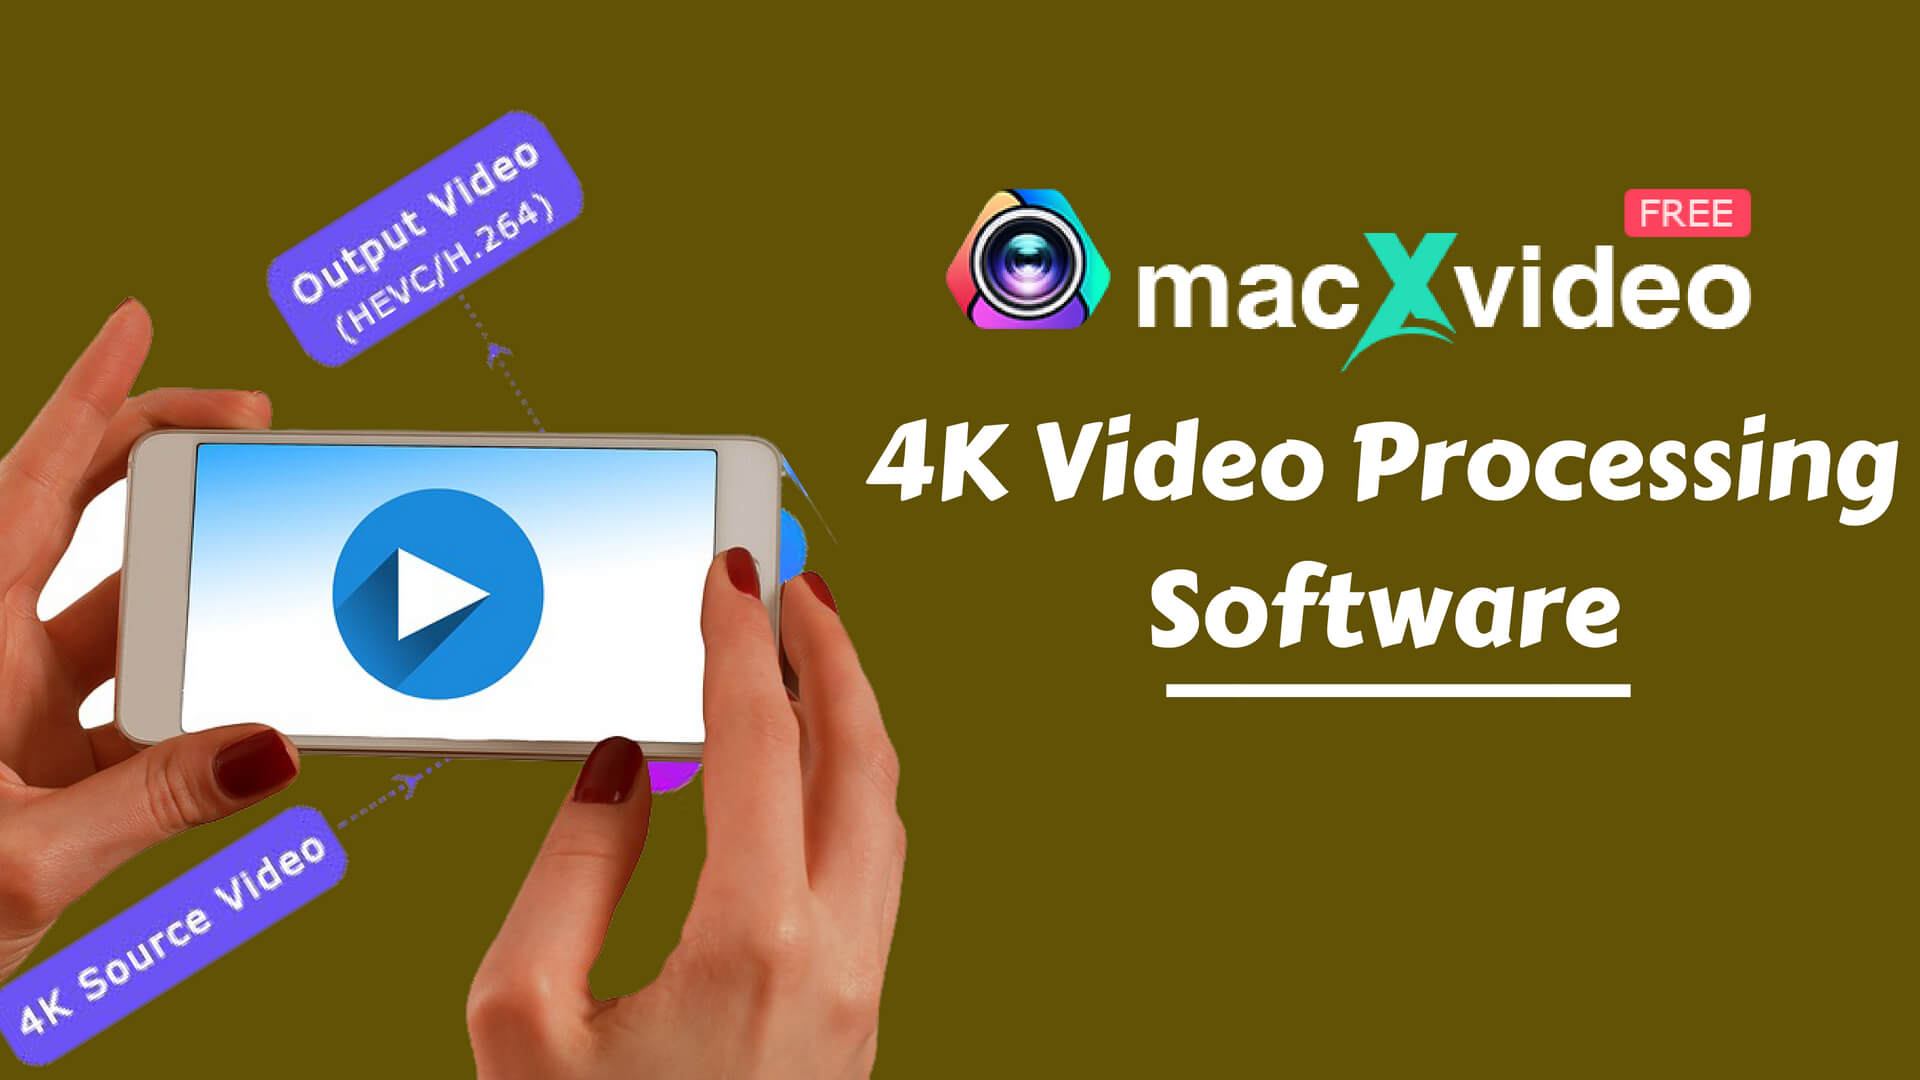 4K Video Processing Software